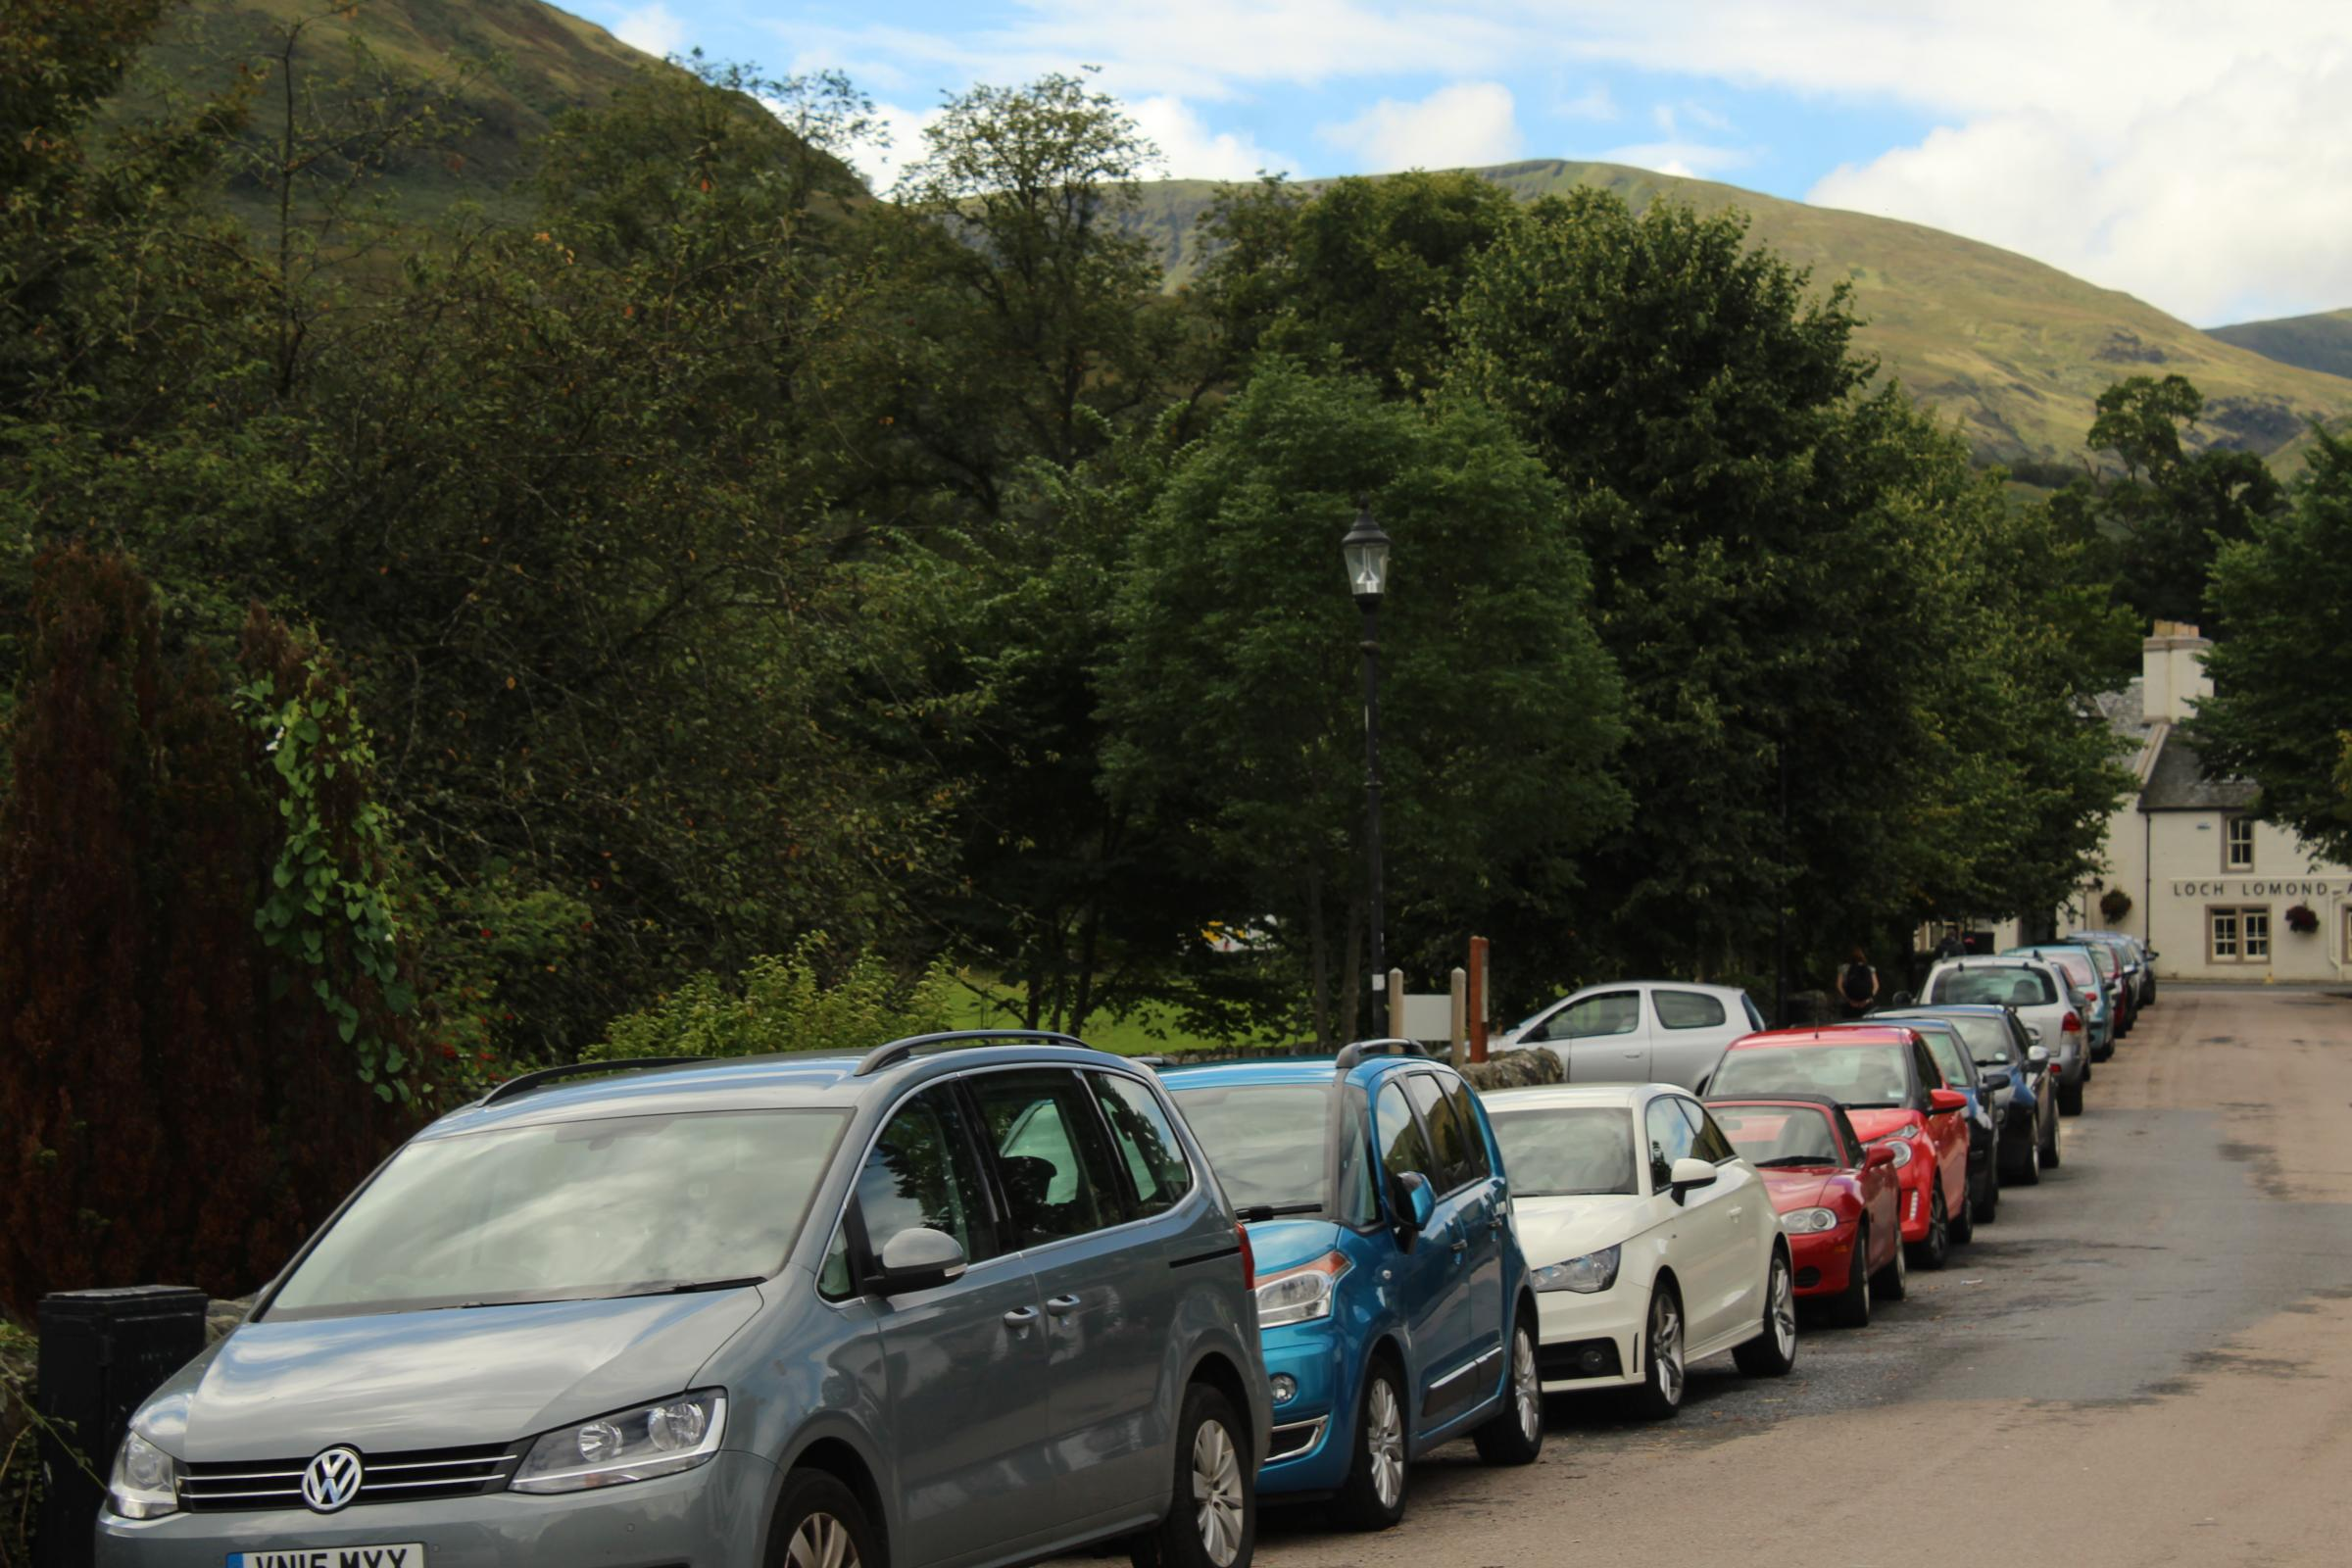 The car park plans could alleviate the problem of parked vehicles clogging up residential streets in Luss